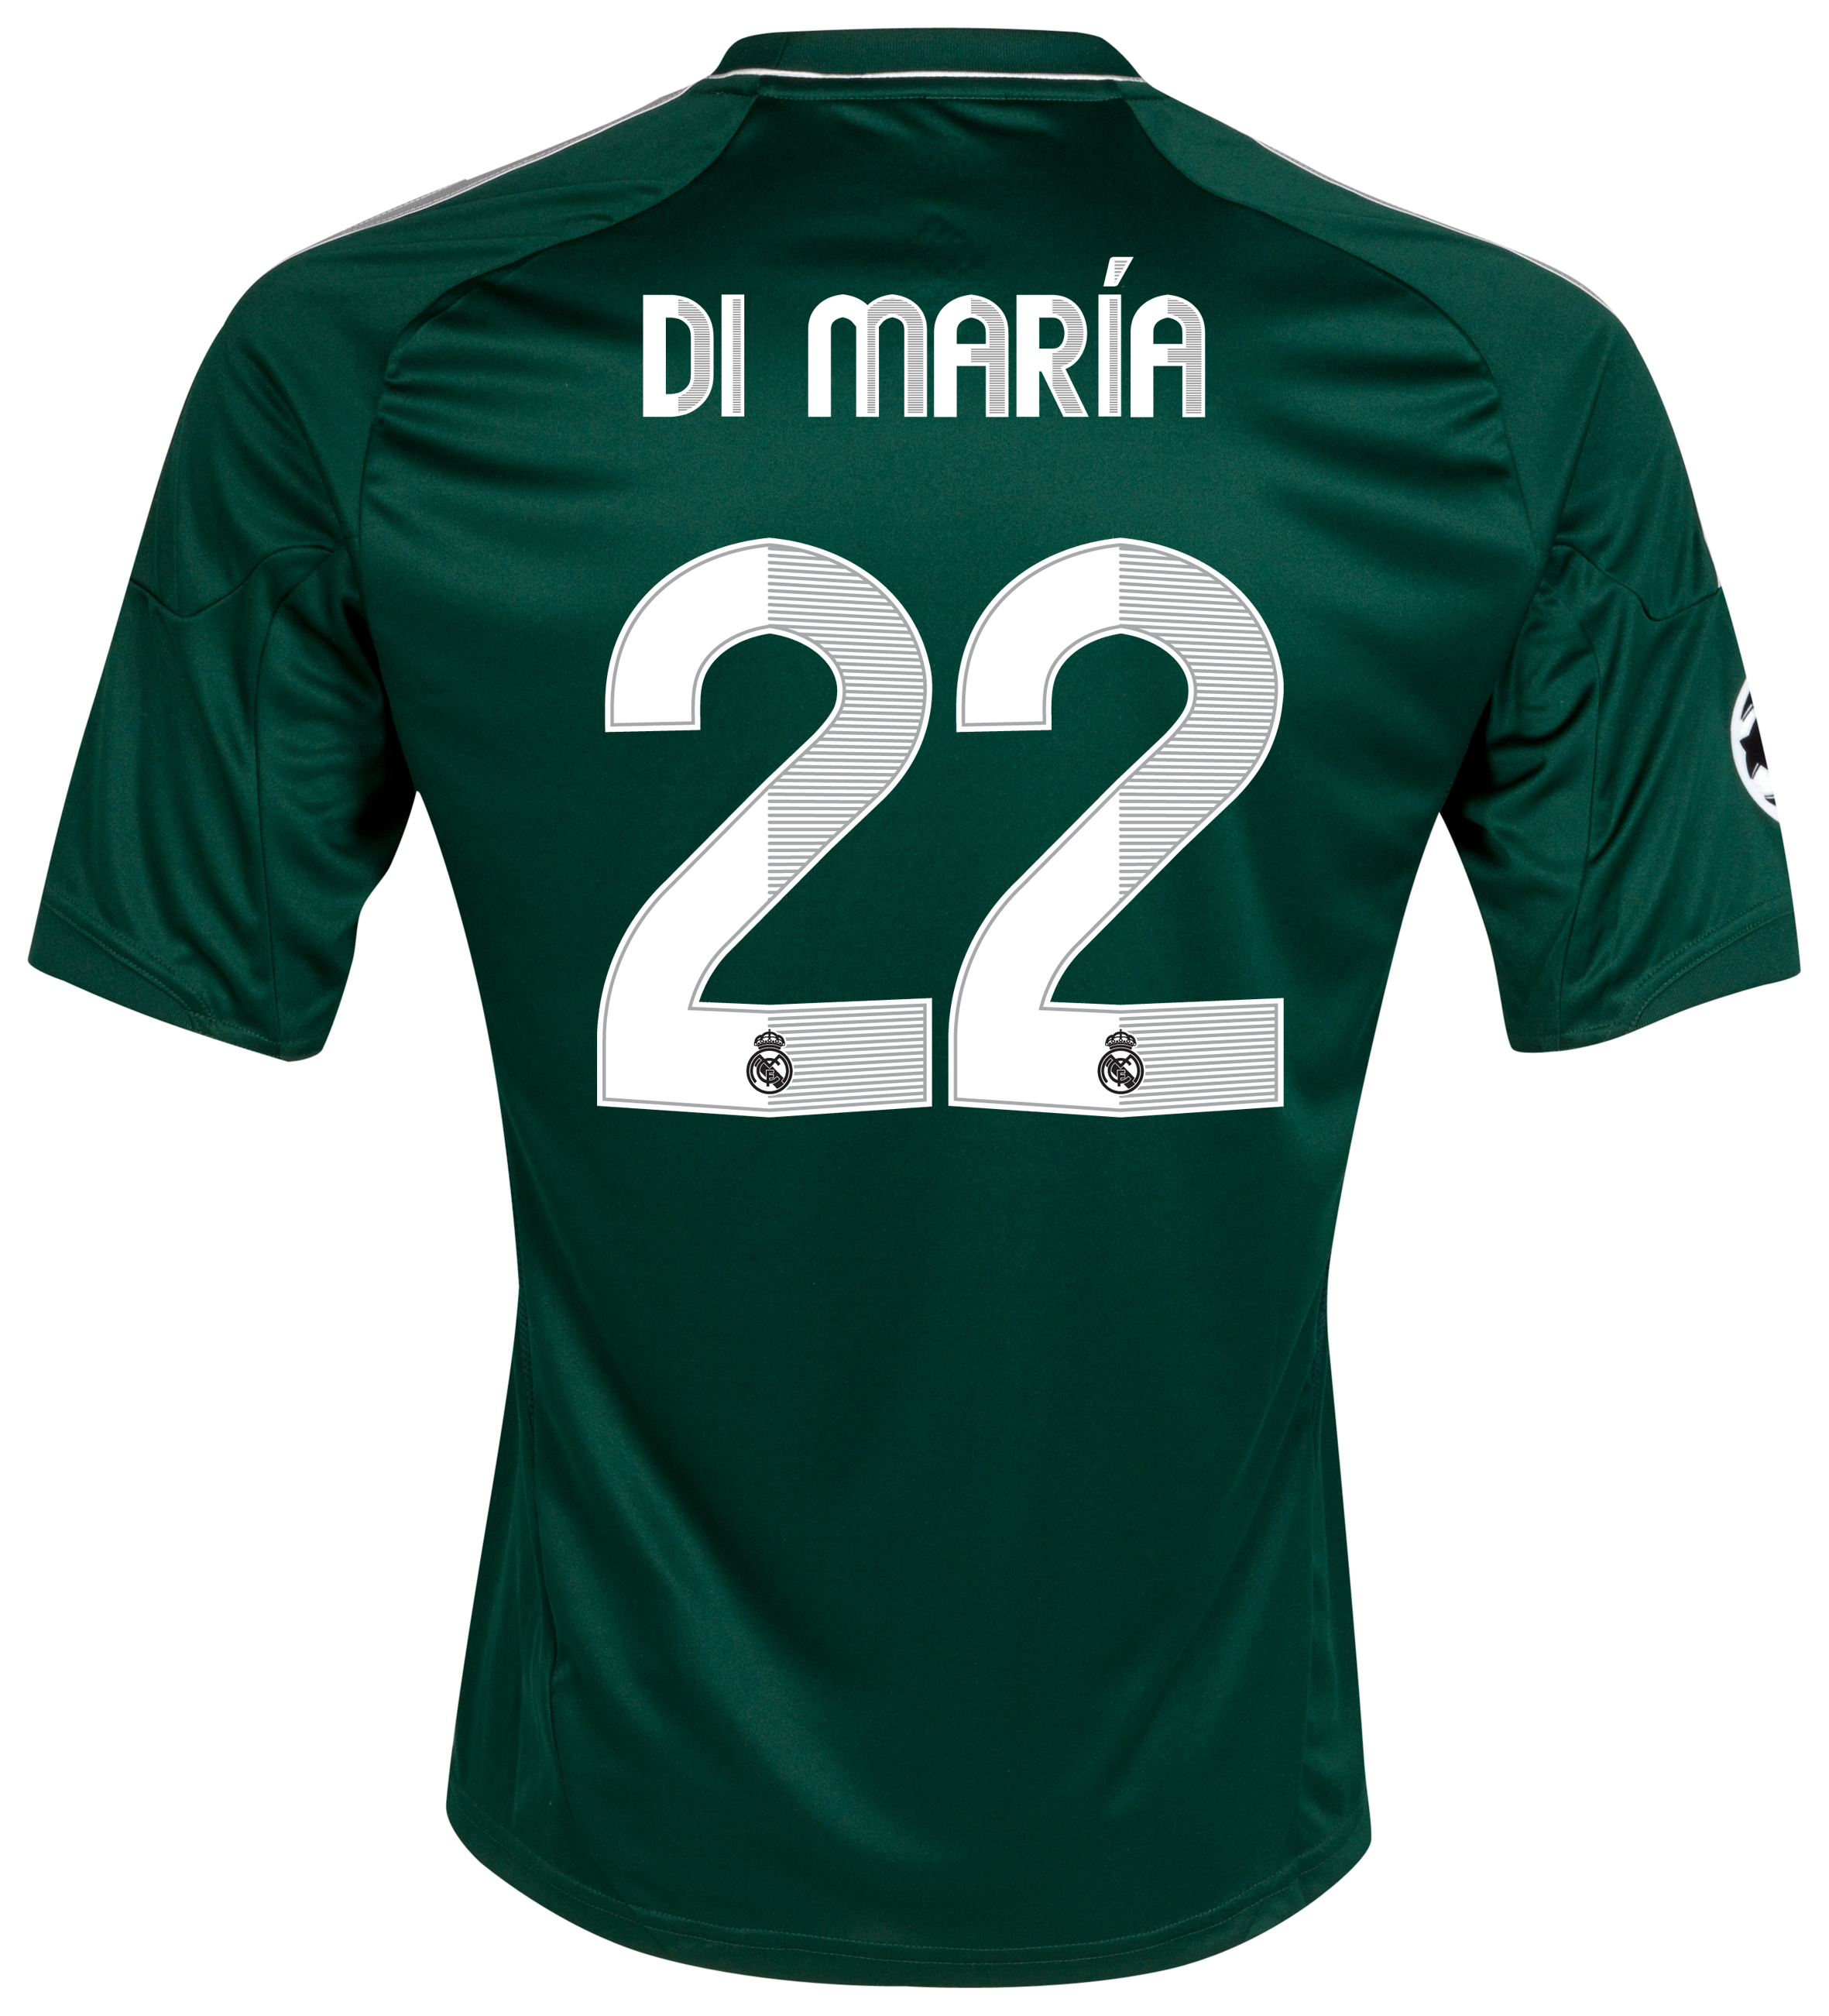 Real Madrid UEFA Champions League Third Shirt 2012/13 with Di María 22 printing